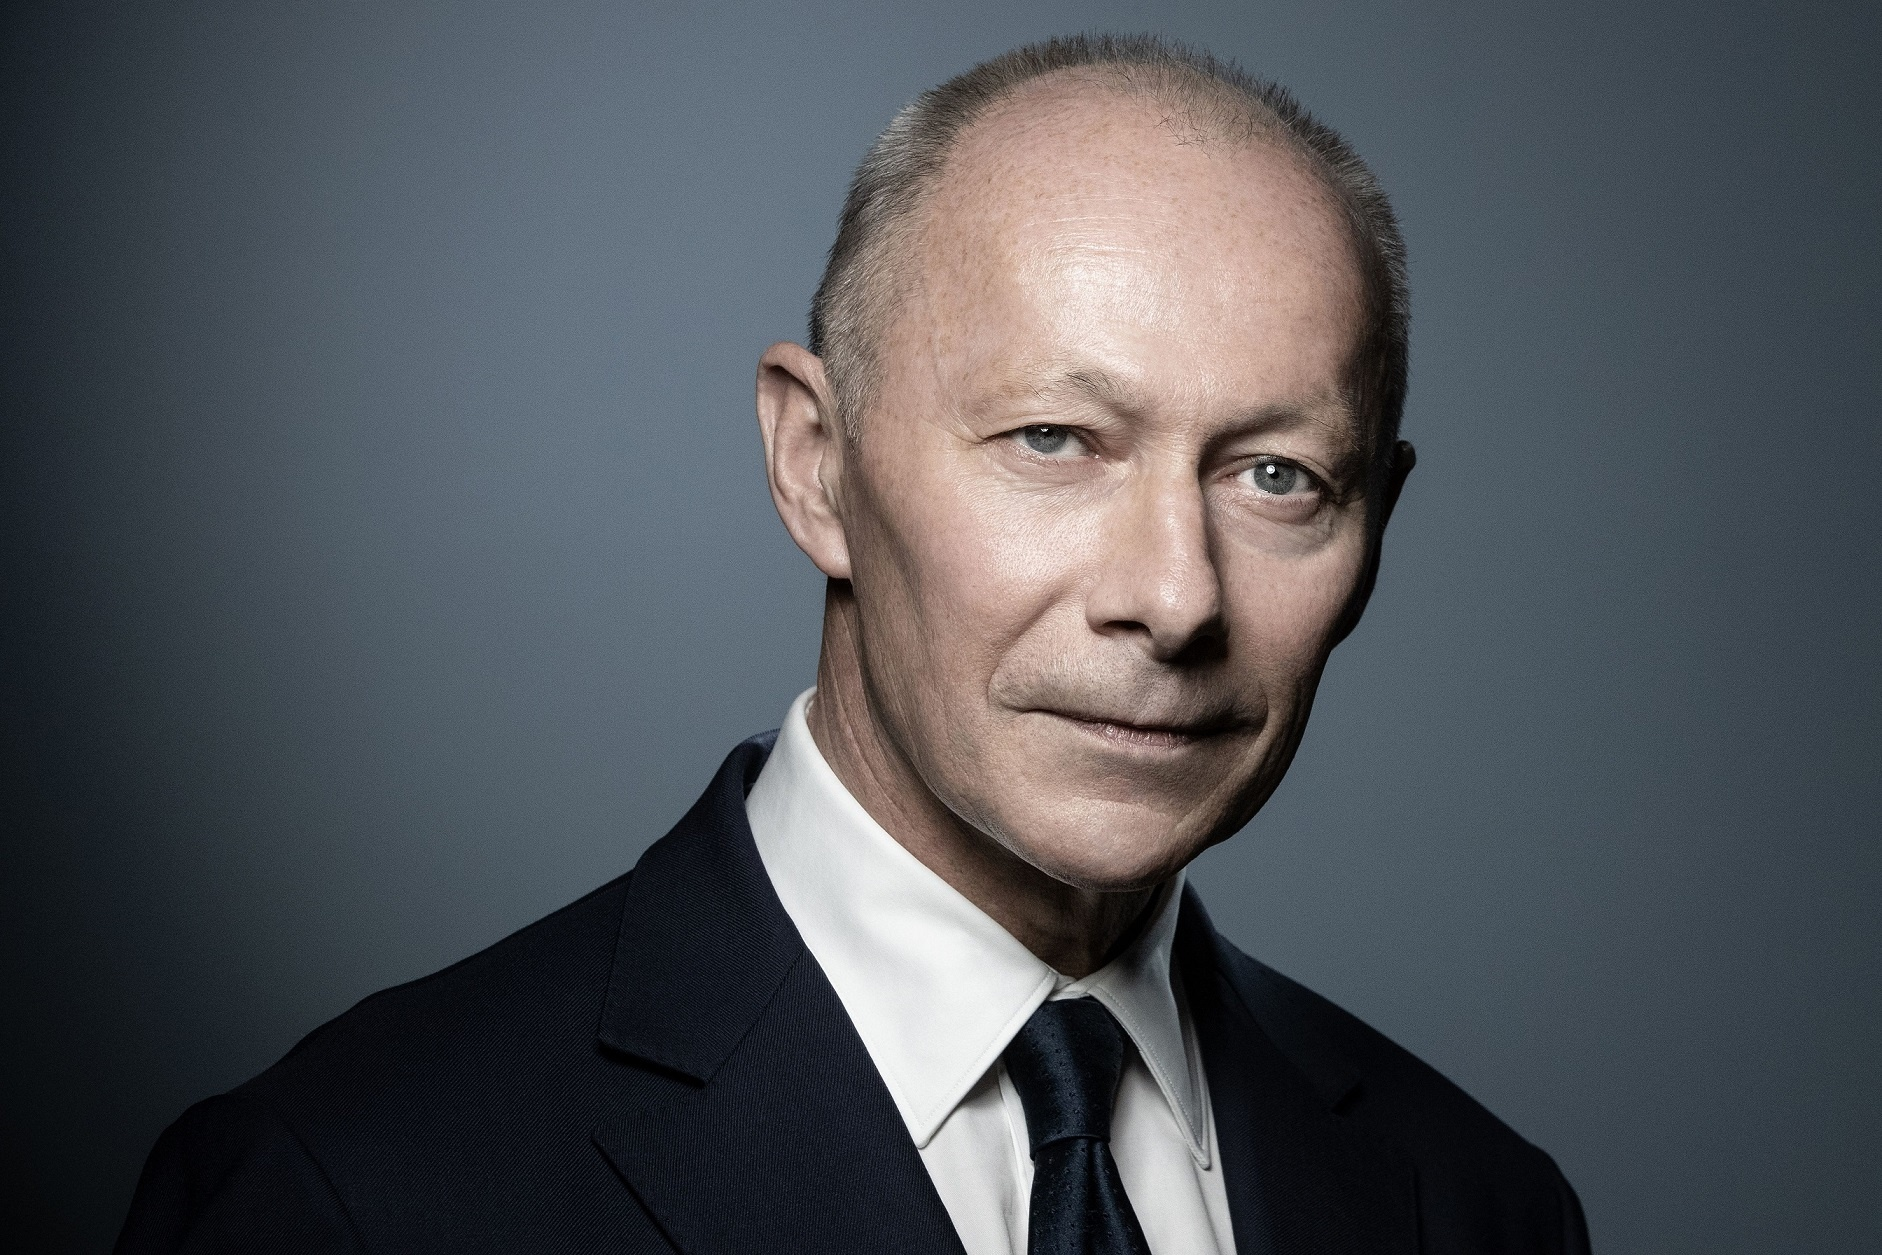 Thierry bolloré announced as new chief executive officer of jaguar land rover